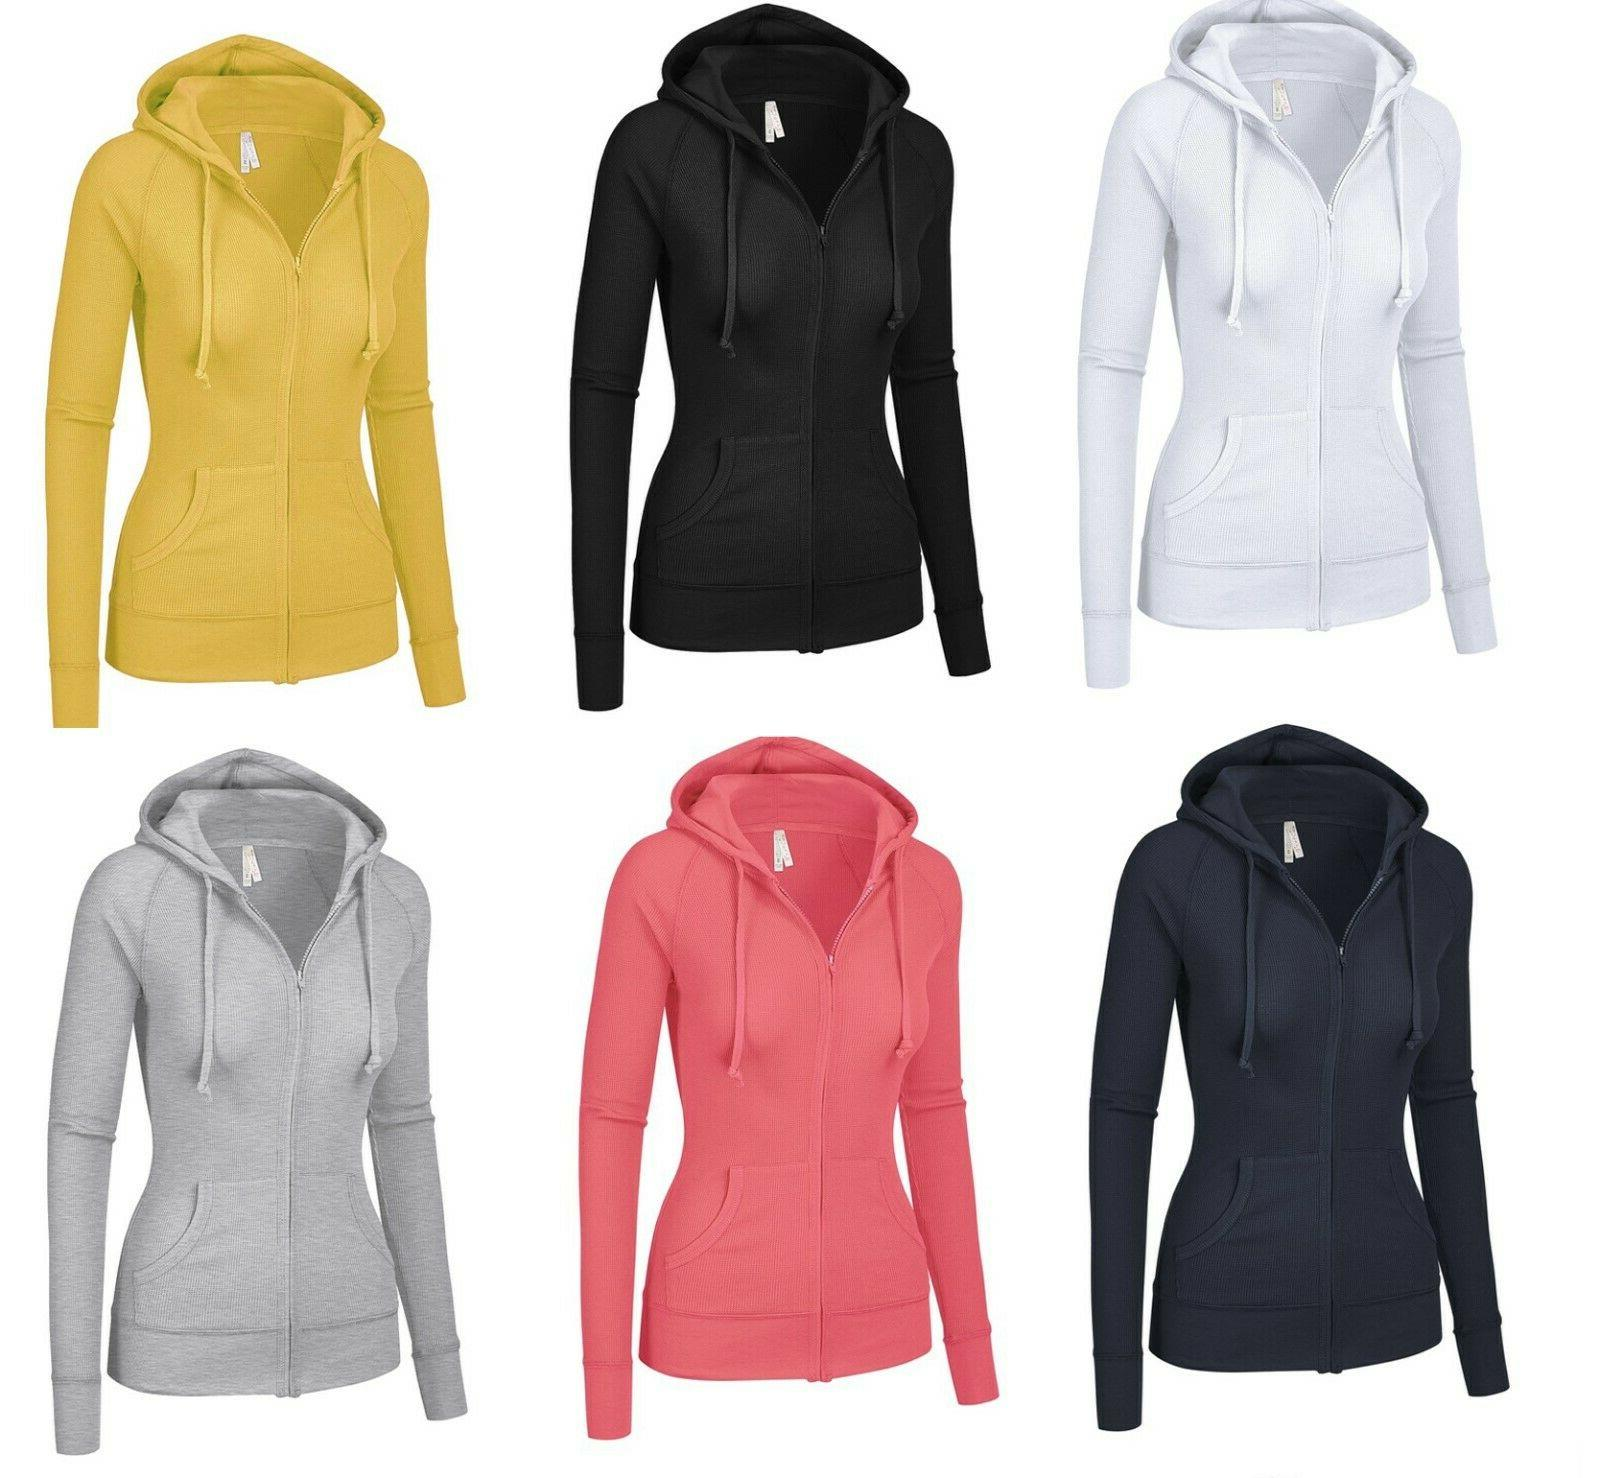 Women's Thermal Up Jacket Pockets